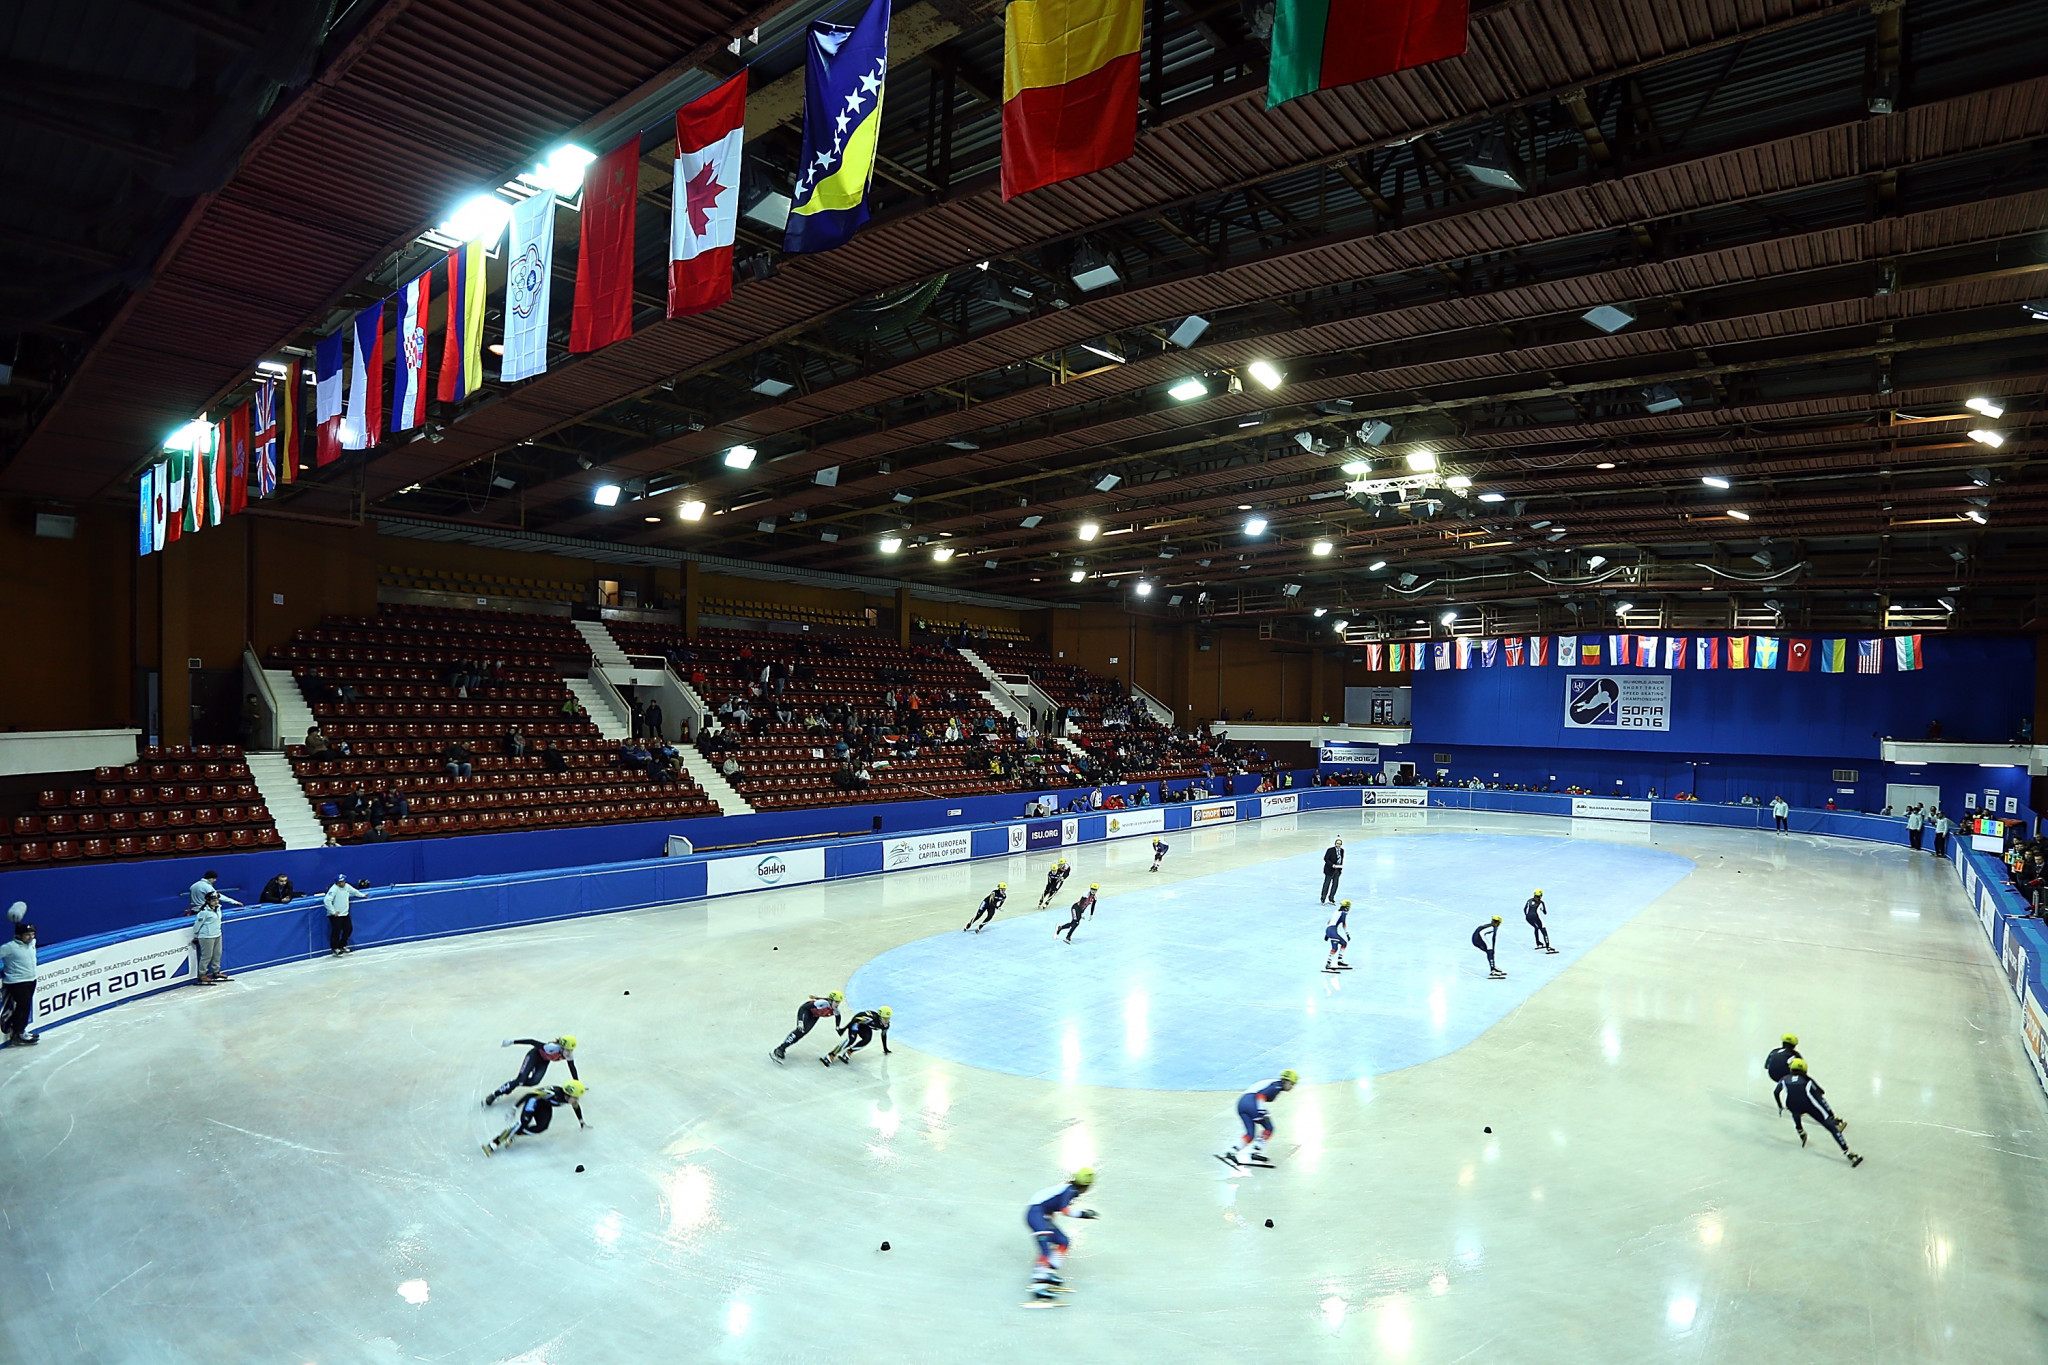 The Winter Sports Palace in Sofia has a capacity of 4,600 and also hosts short track speed skating events as well as ice hockey ©Getty Images